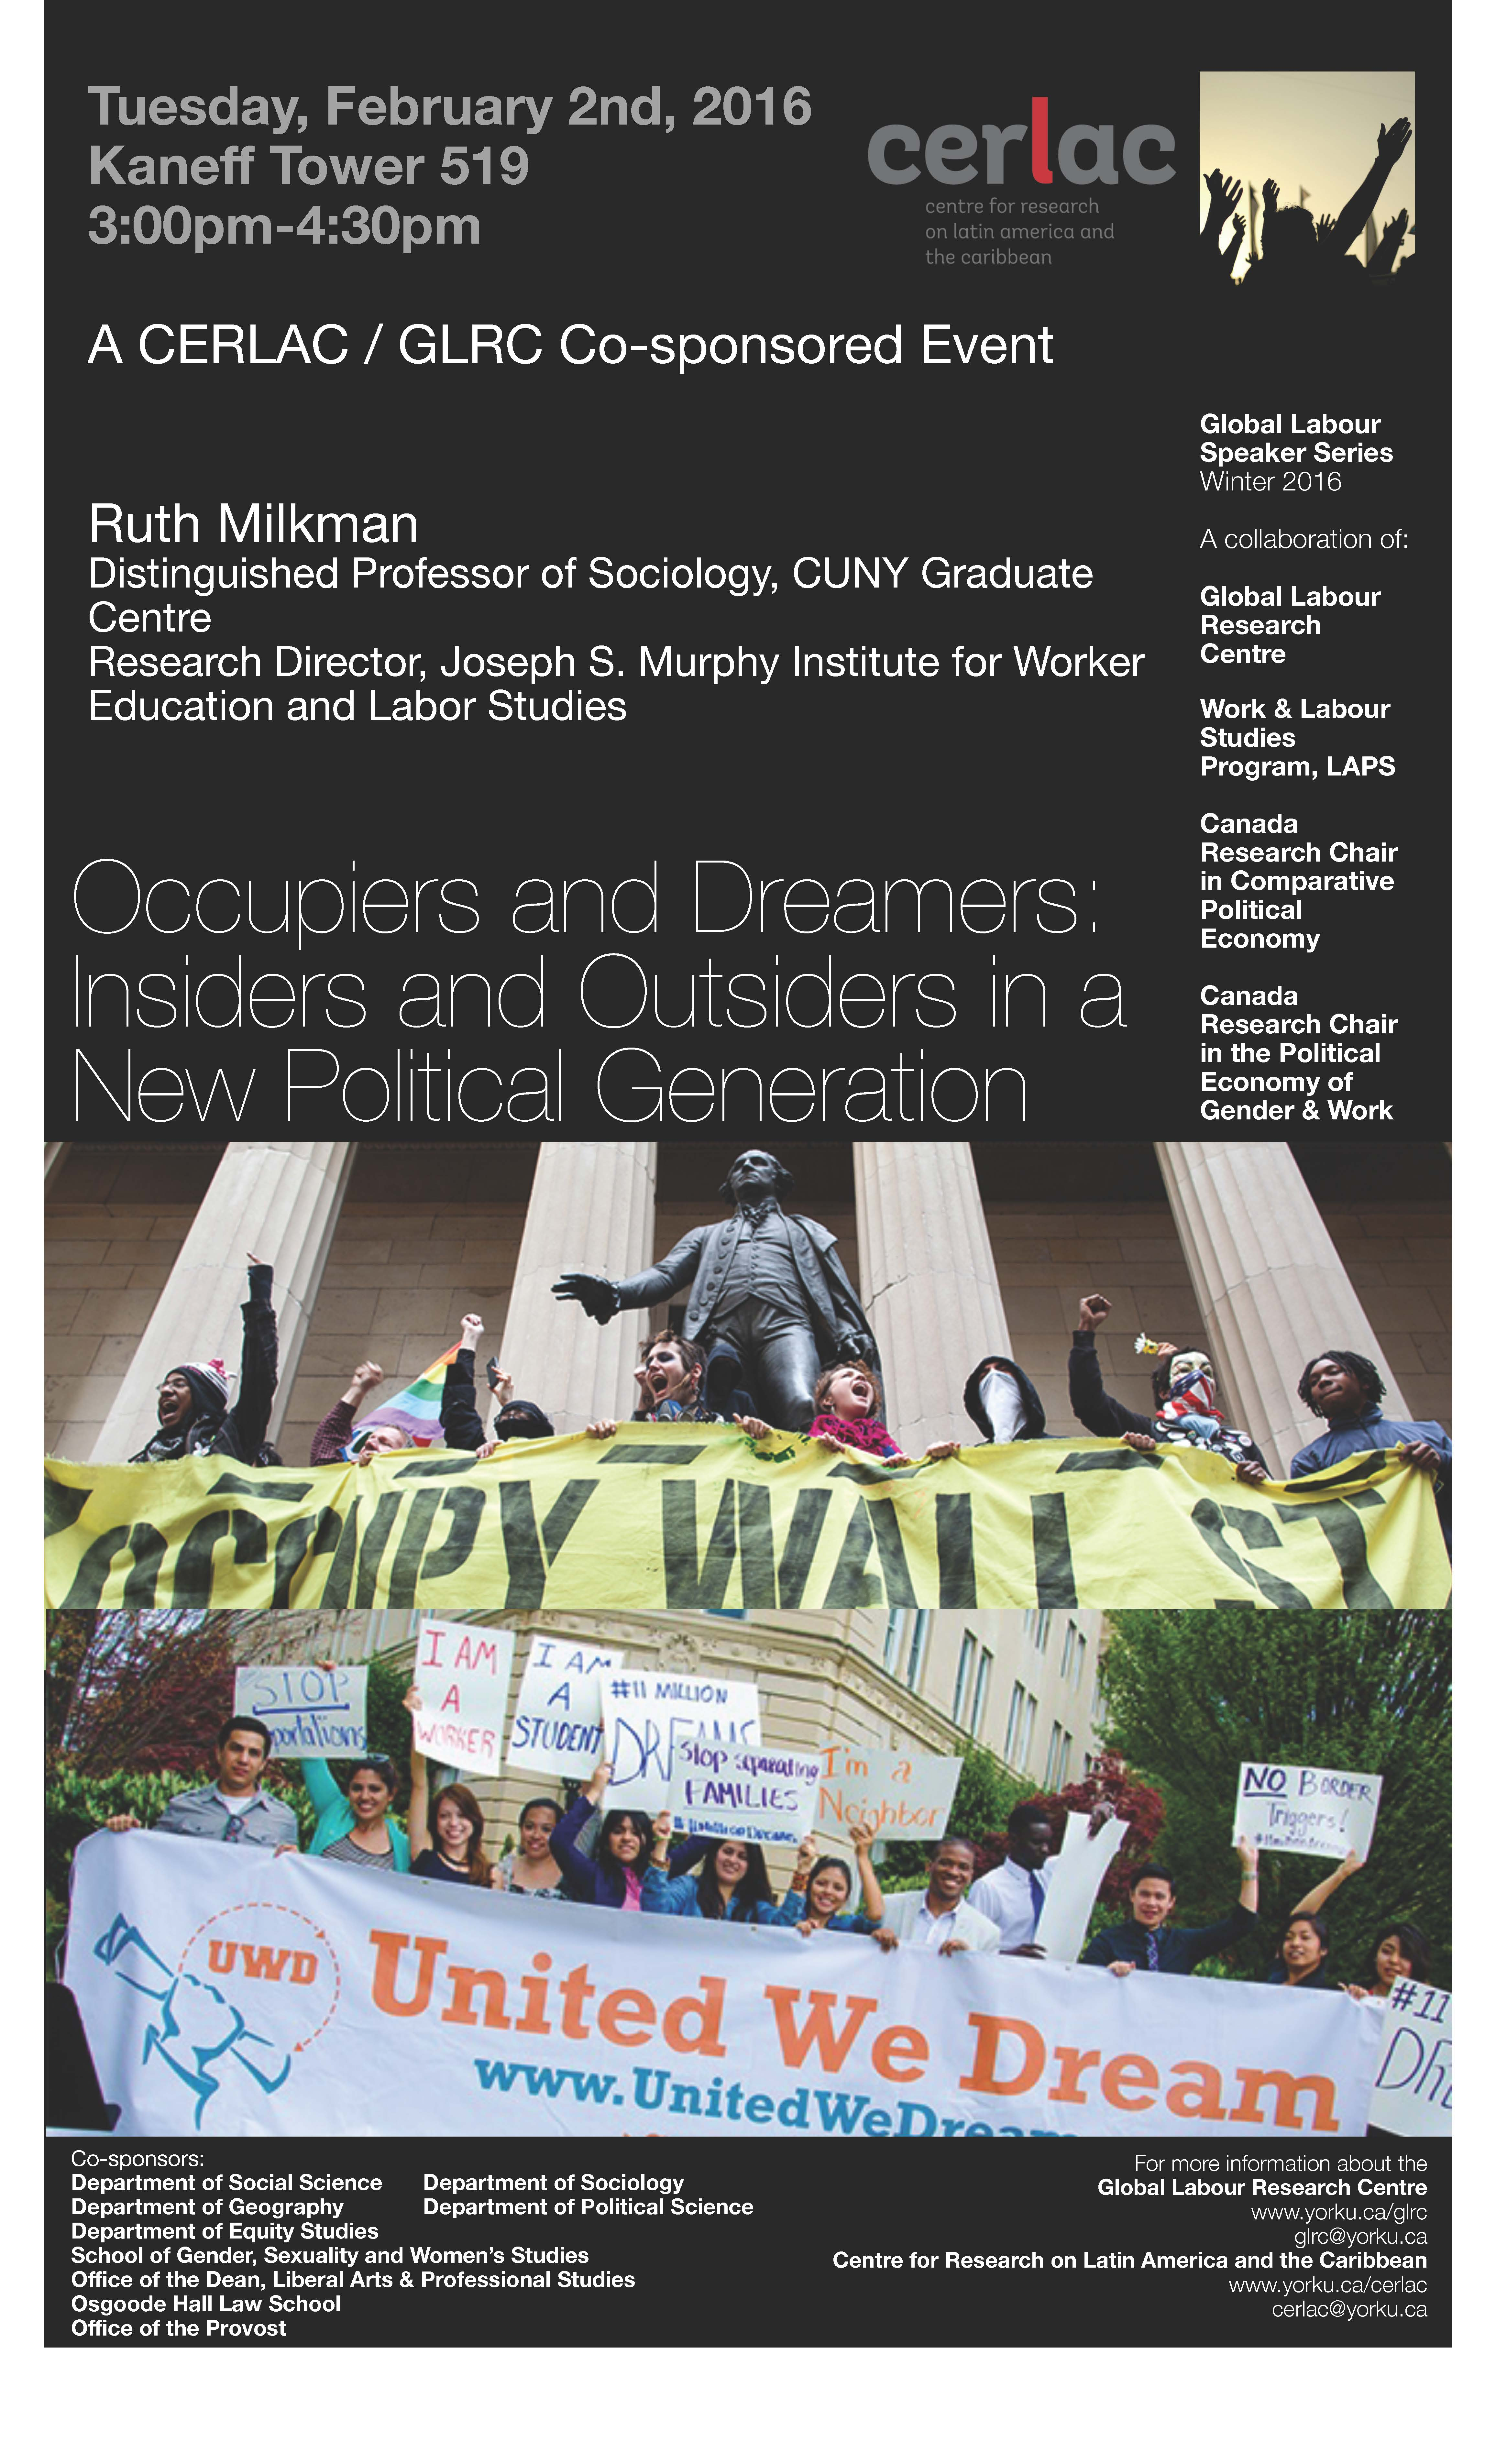 GLSS - Occupiers and Dreamers